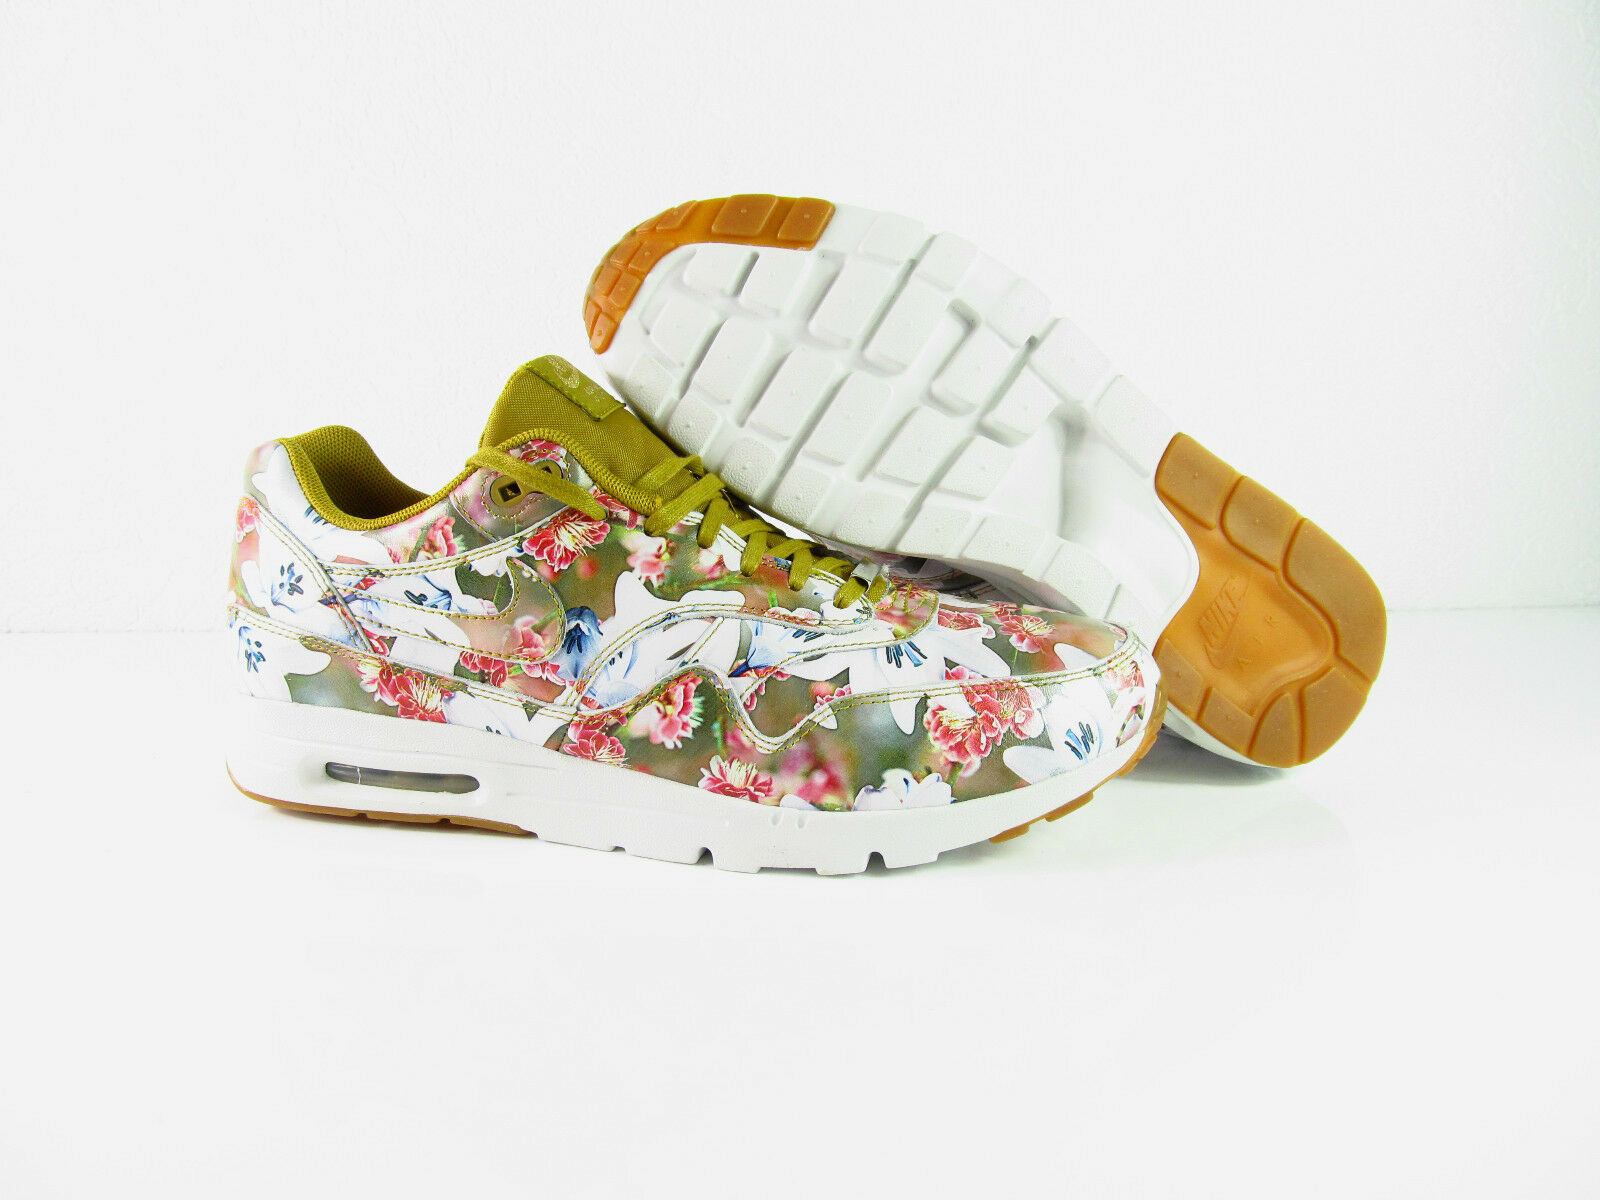 Nike Air Max 1 Ultra Pack Lotc QS MILAN City Pack Ultra Floral NSW OG New 747105-700 4680ca